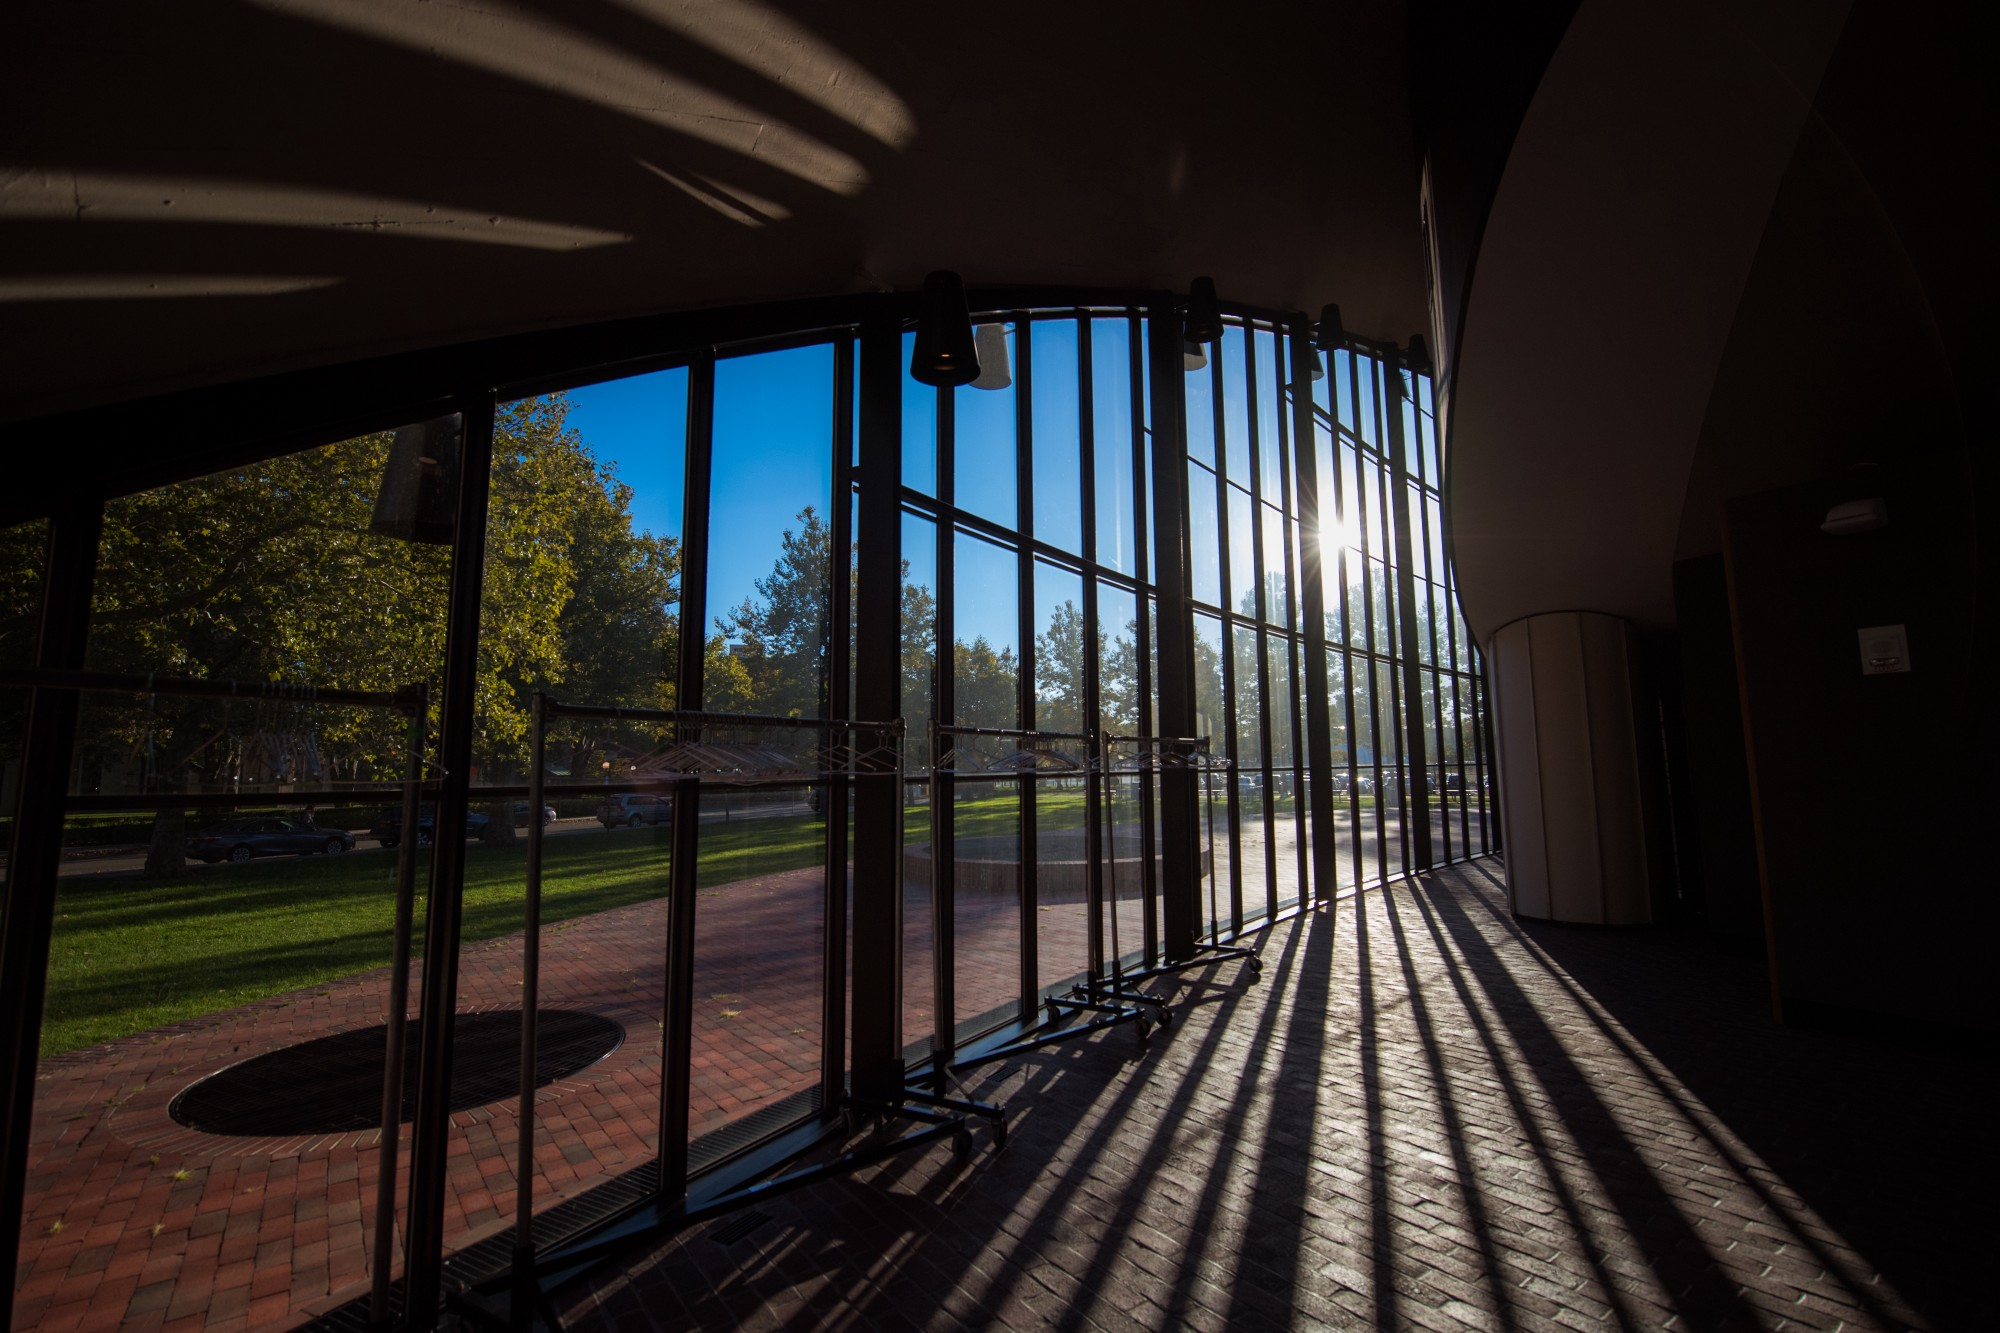 View from inside the Kresge auditorium of the sun shining and casting shadows on the ground in the foyer